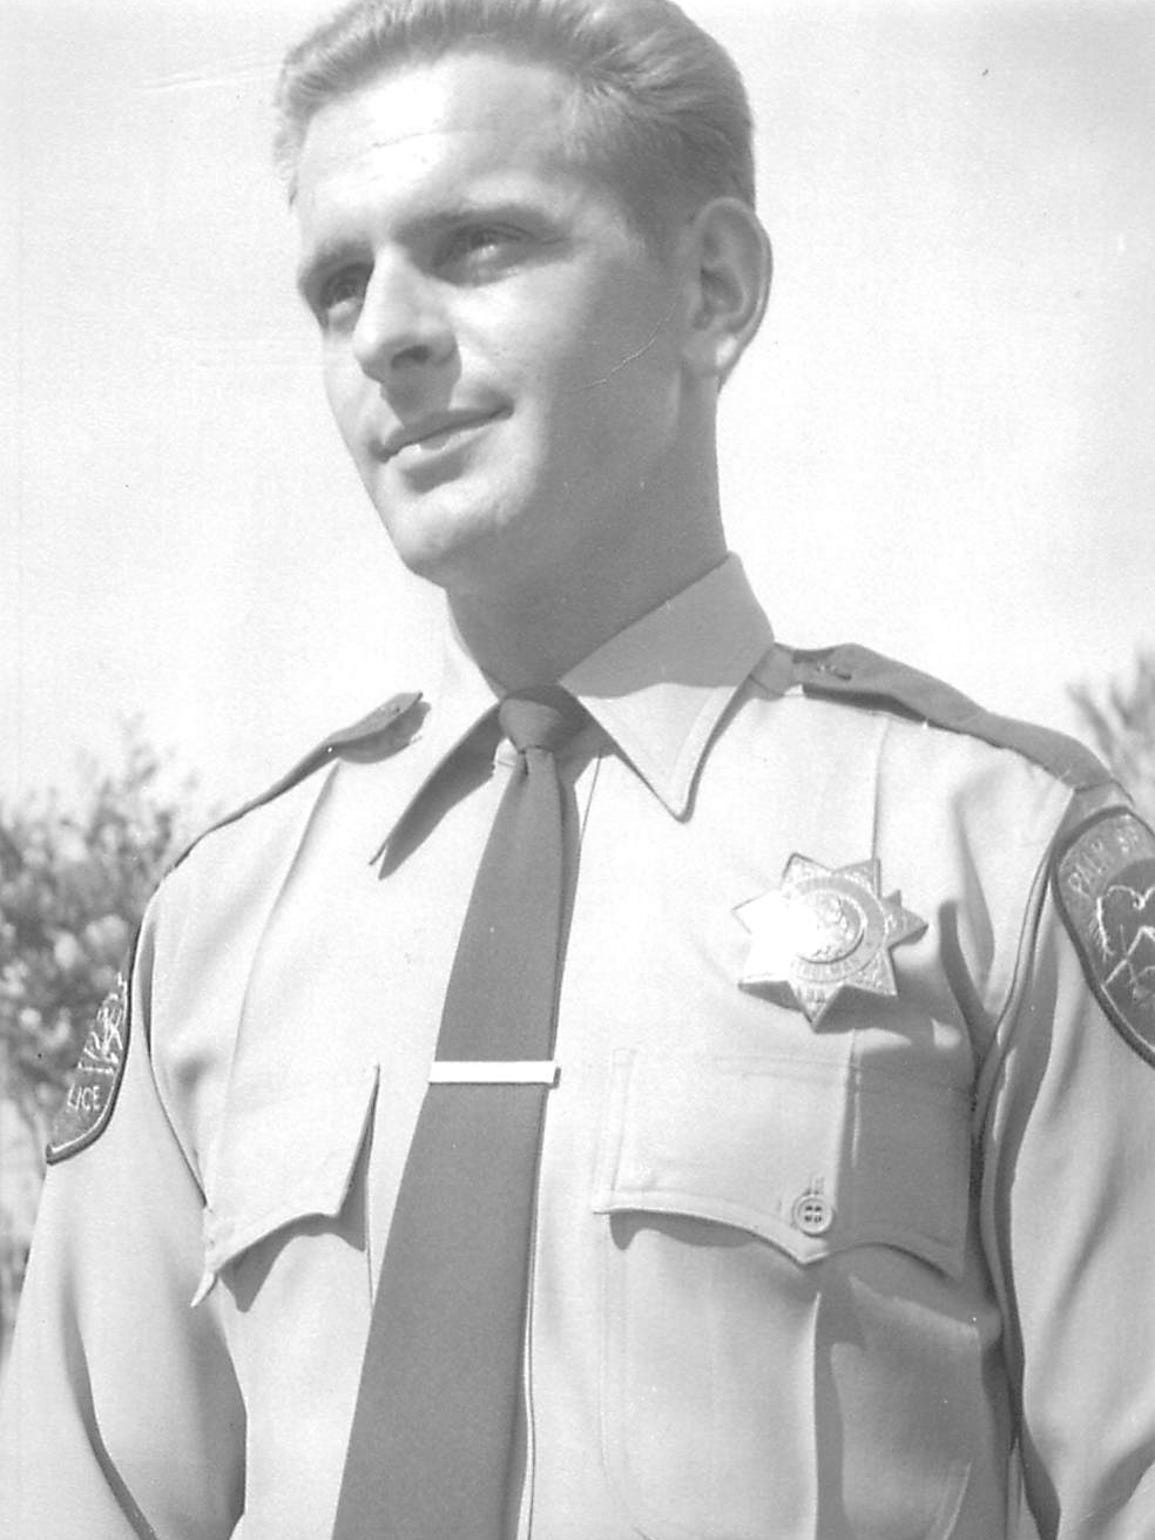 Palm Springs Police Officer Jerry Hestrin, the father